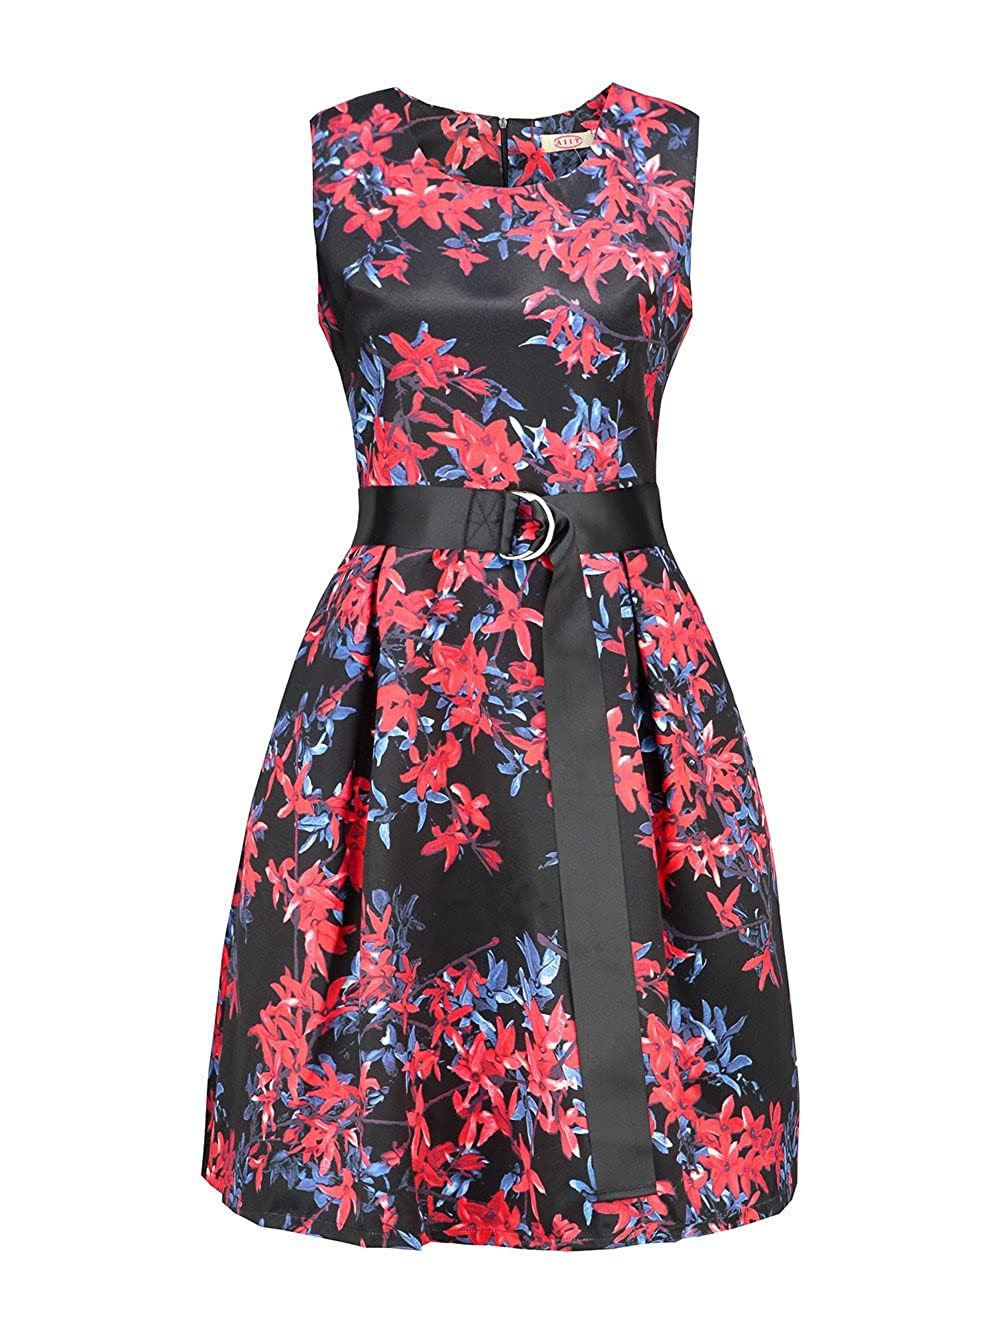 AIIT Womens Spring Floral Fit And Flare Dress With Adjust Sash Plus Size LYQ-3529